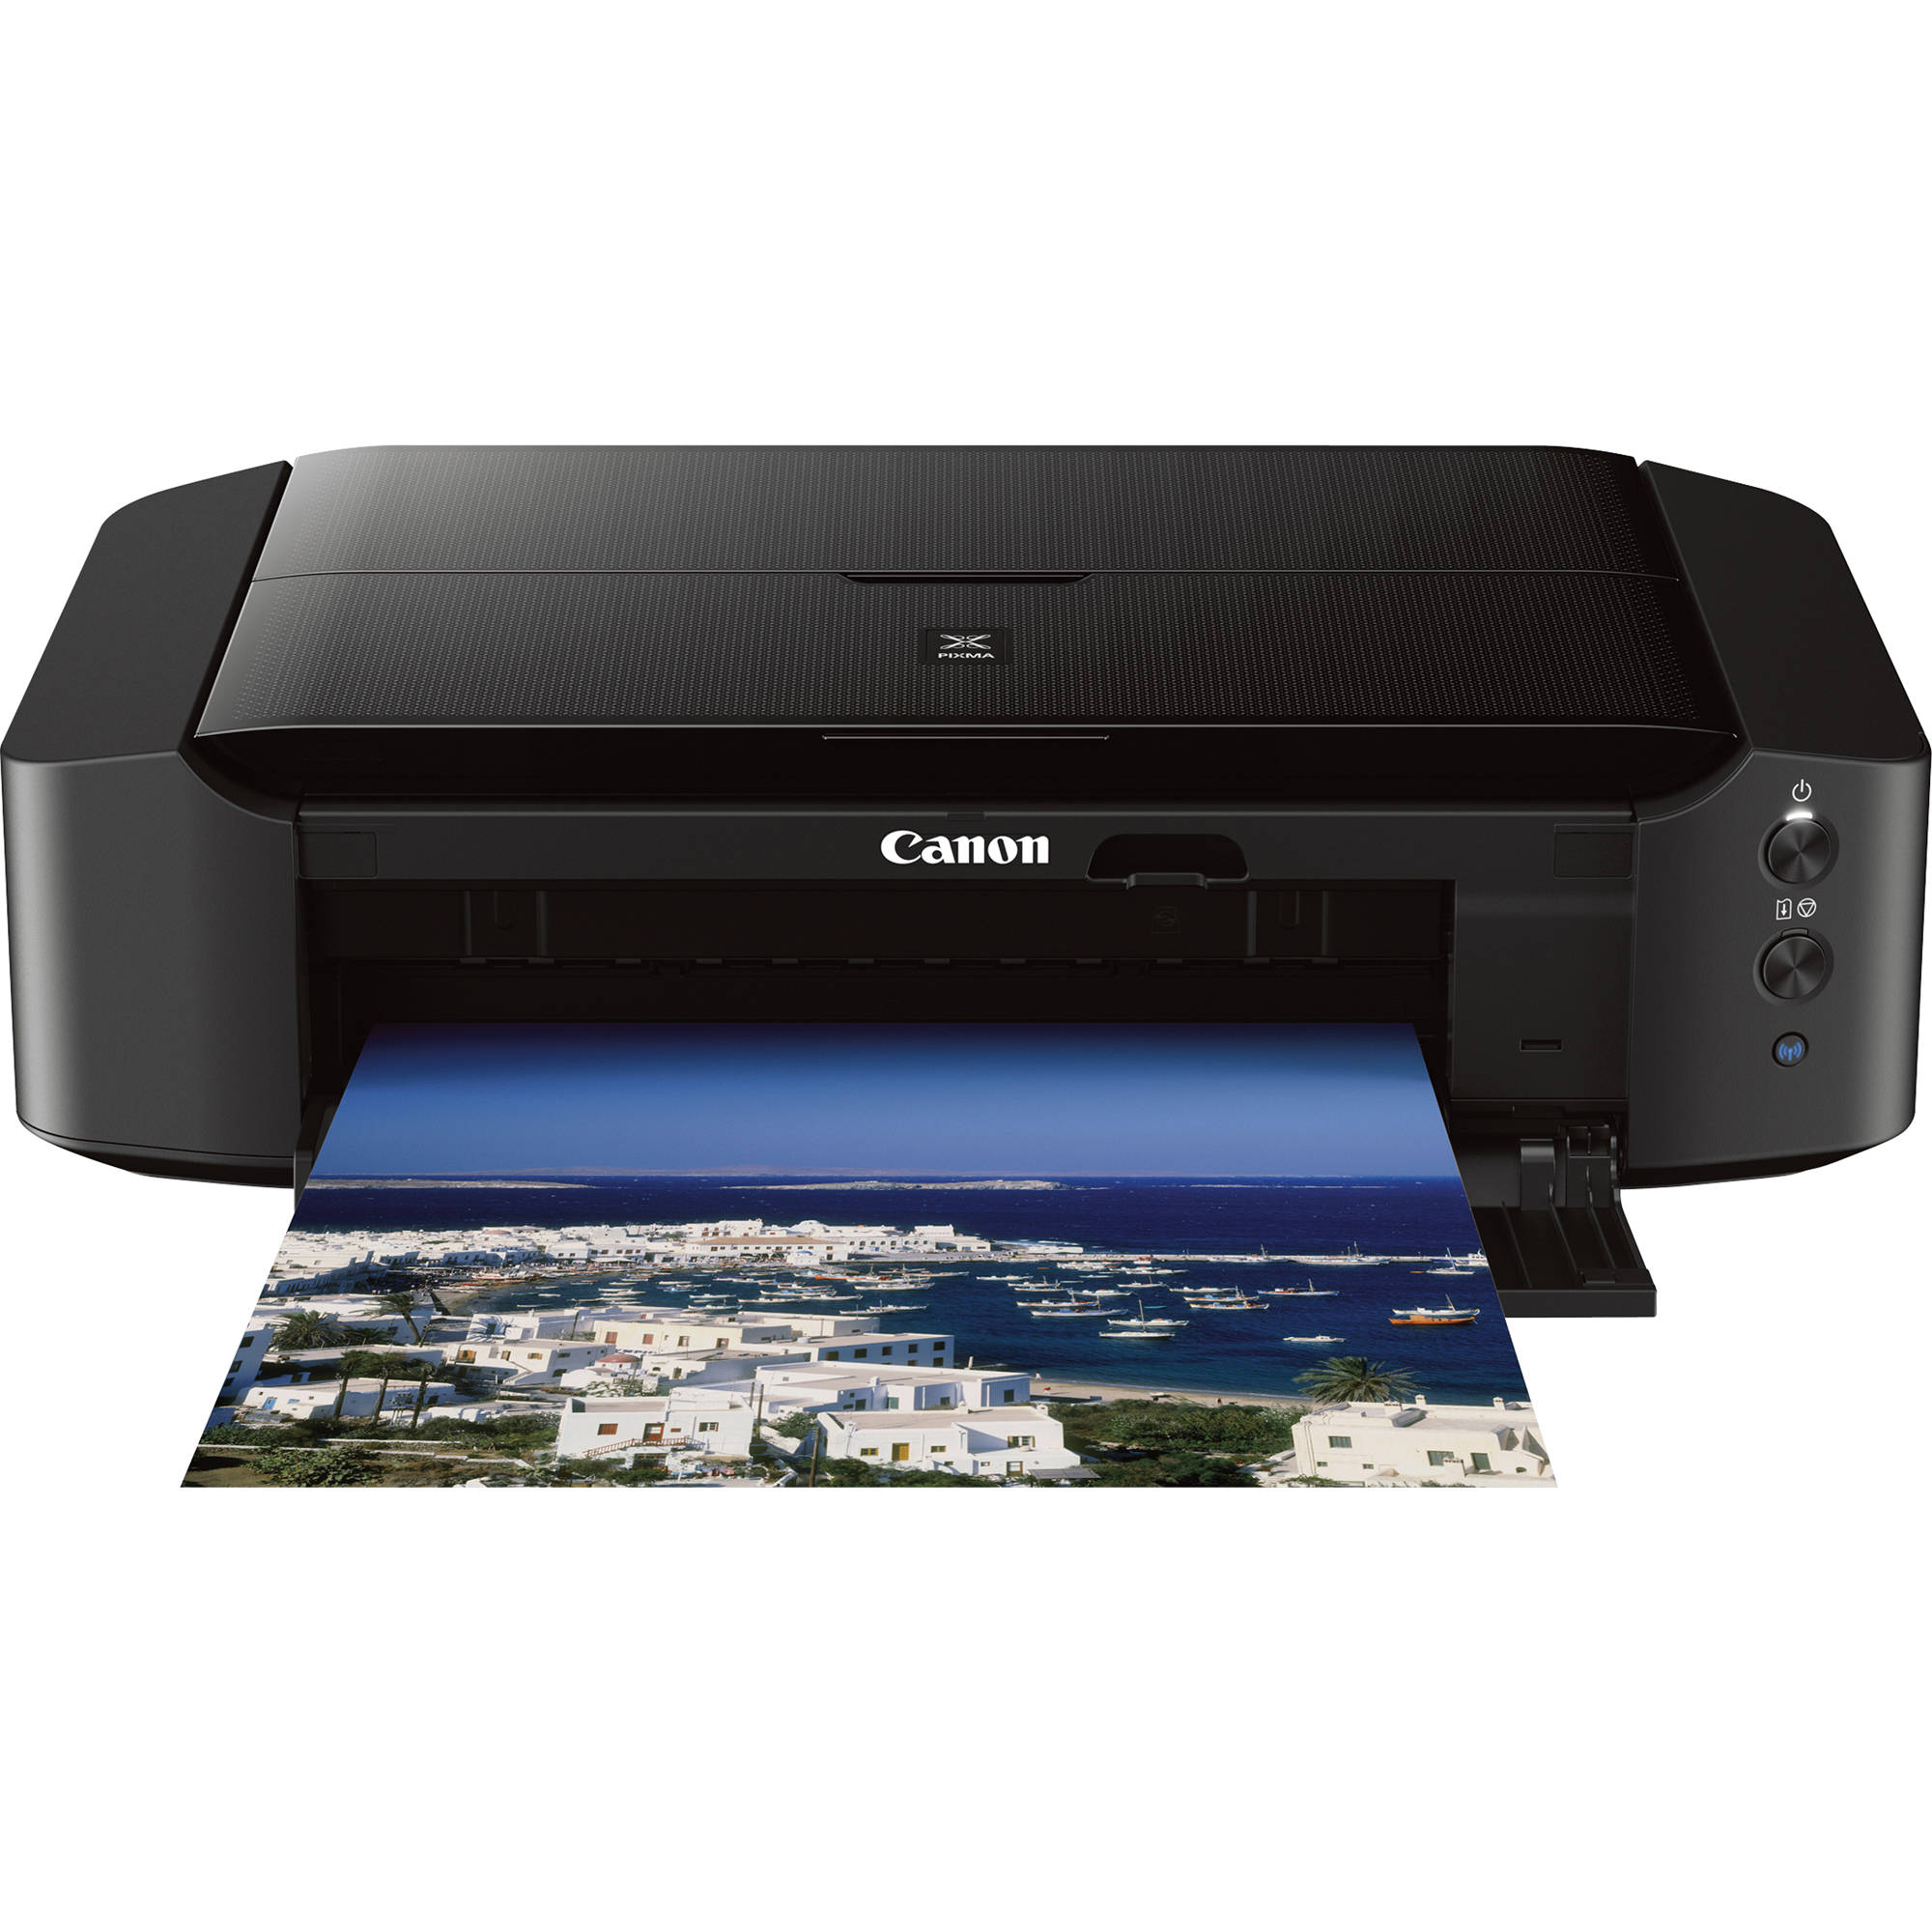 Canon PIXMA iP8720 Wireless Inkjet Photo Printer 8746B002 B&H